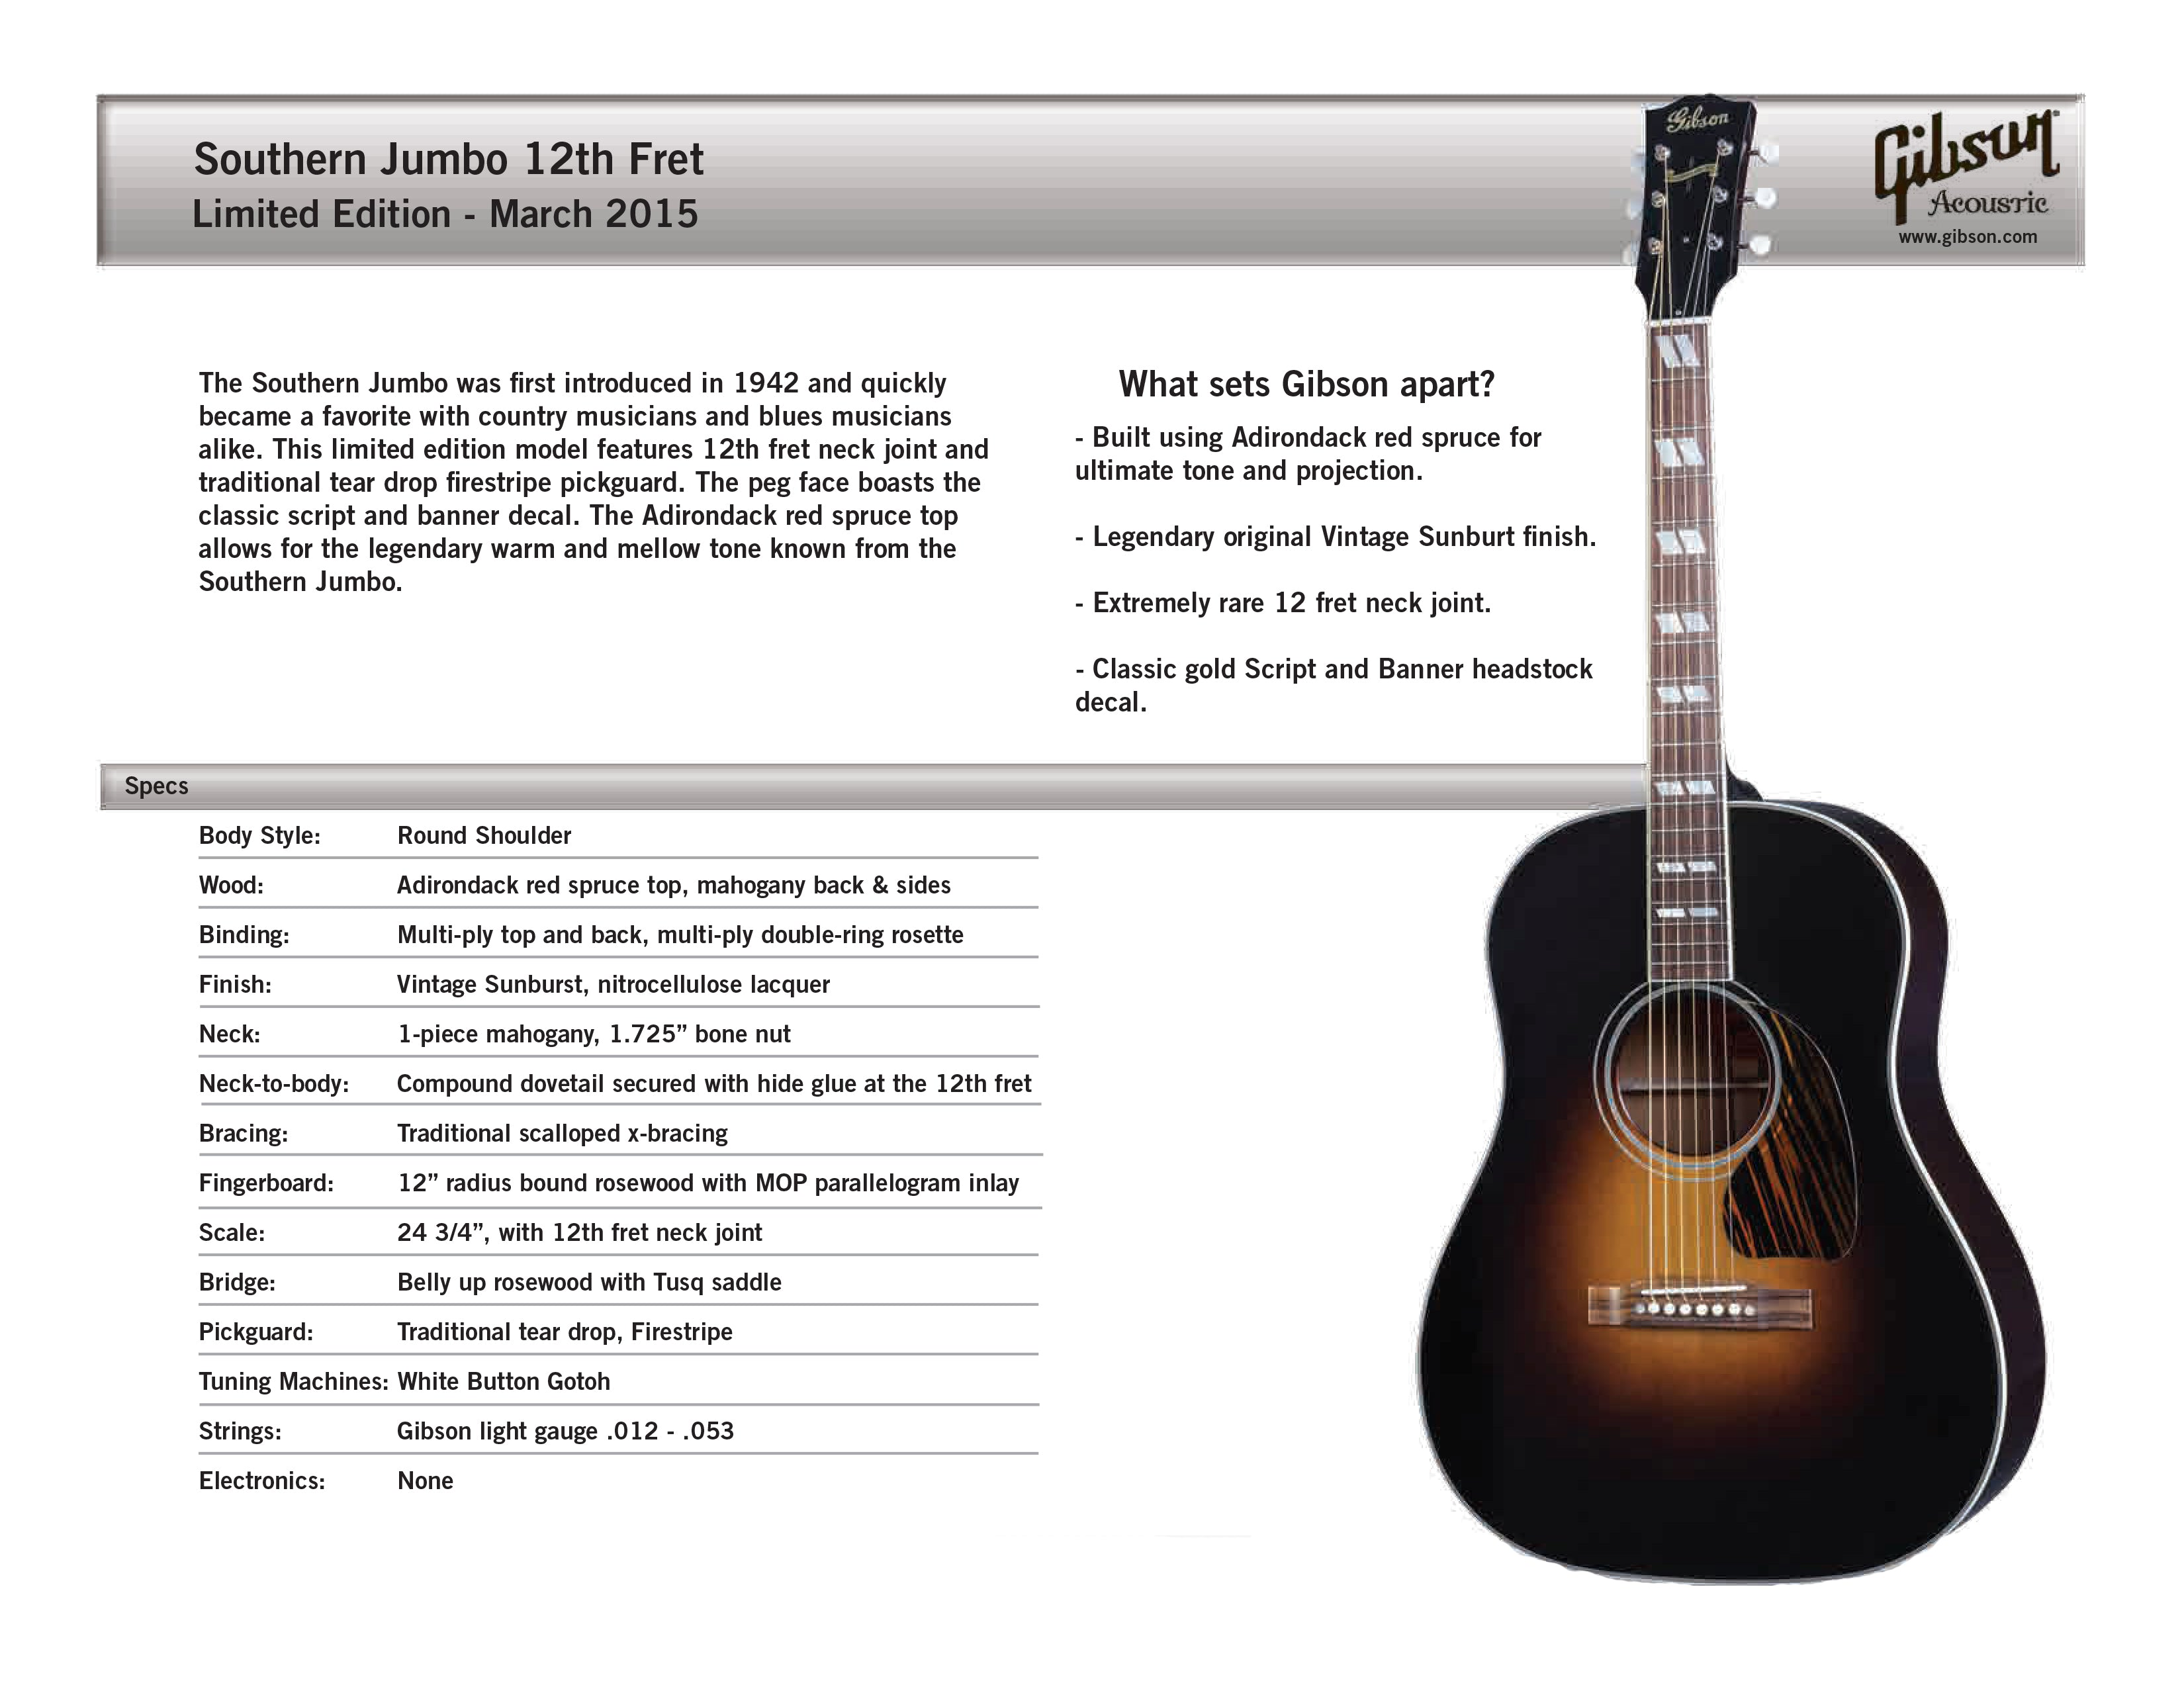 2015 Gibson Limited Edition Acoustics | The Music Zoo